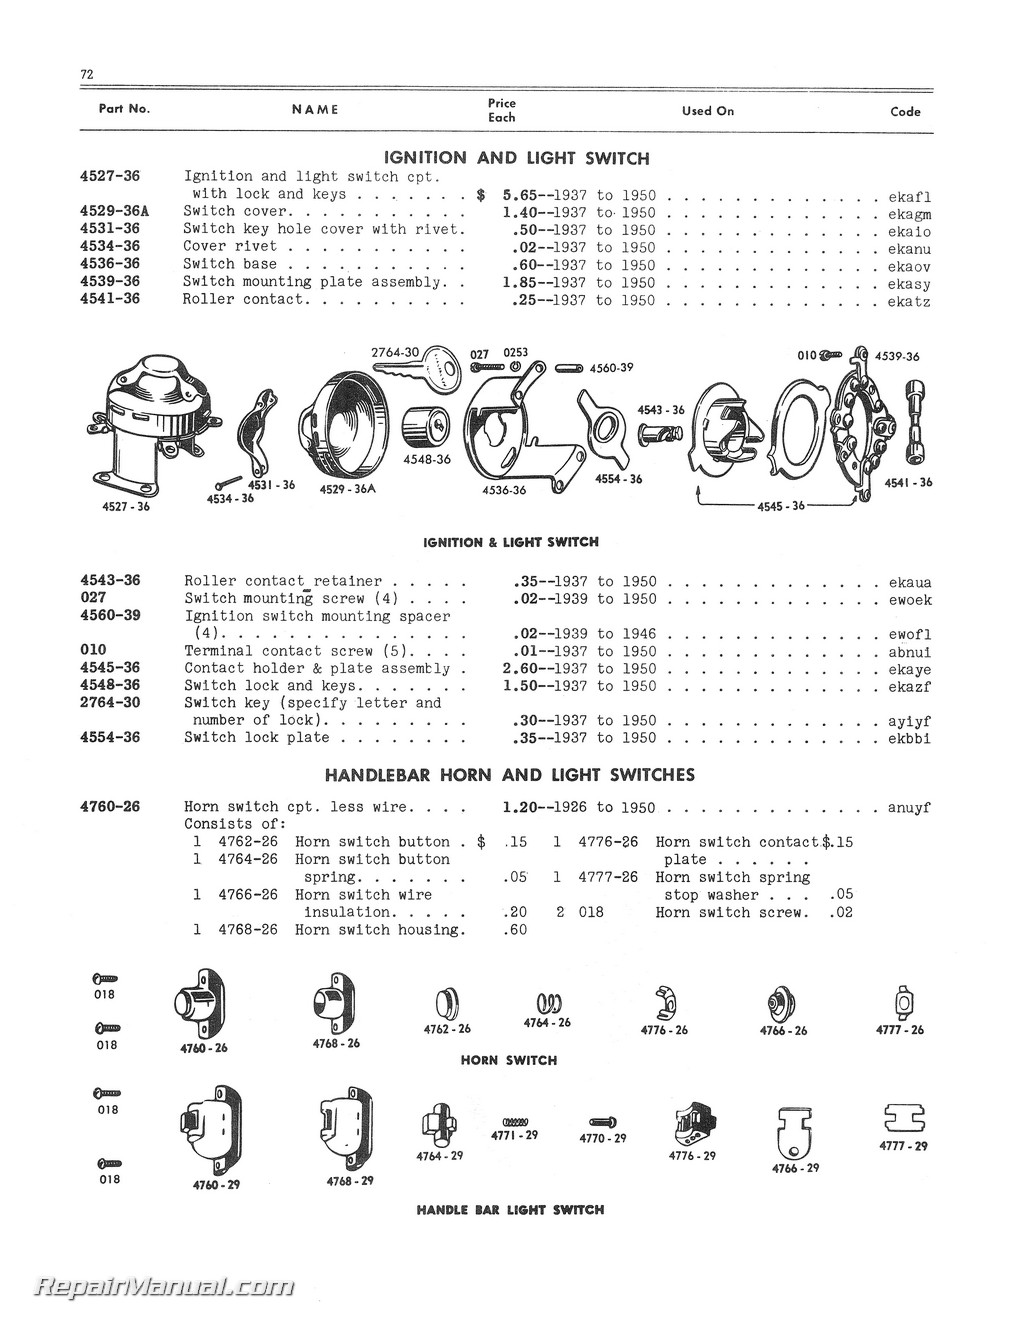 Harley Davidson Online Parts Diagram Rear Fender Trusted Wiring Diagrams 1940 1950 45 Cubic Inch 750cc Solo Servi Car Manual